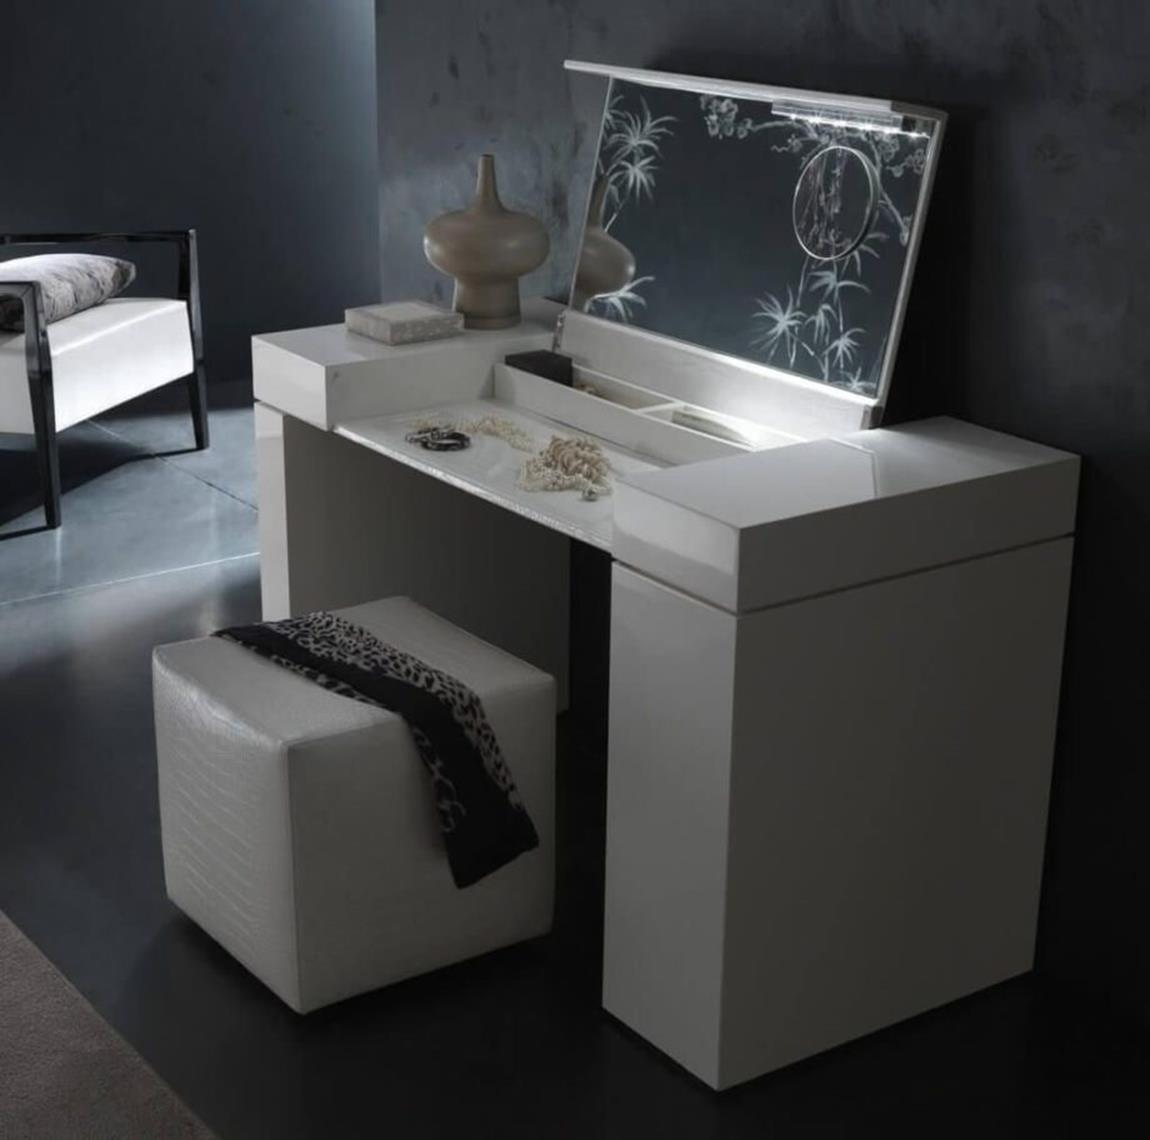 Bedroom Vanity Set With Lights Around Mirror 4